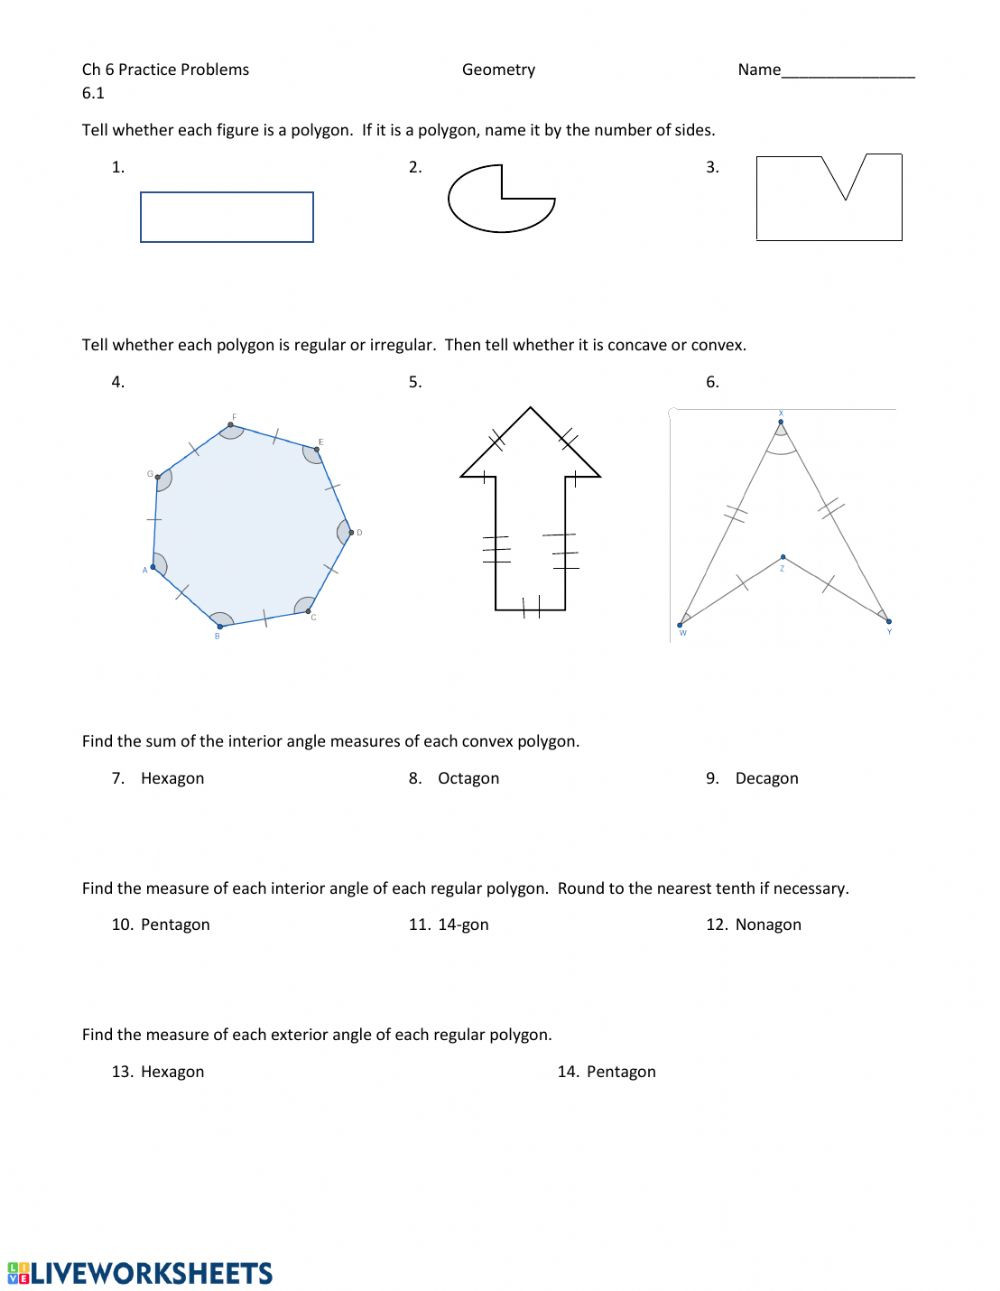 Geometry Worksheets 10th Grade Polygons and Quadrilaterals Interactive Worksheet